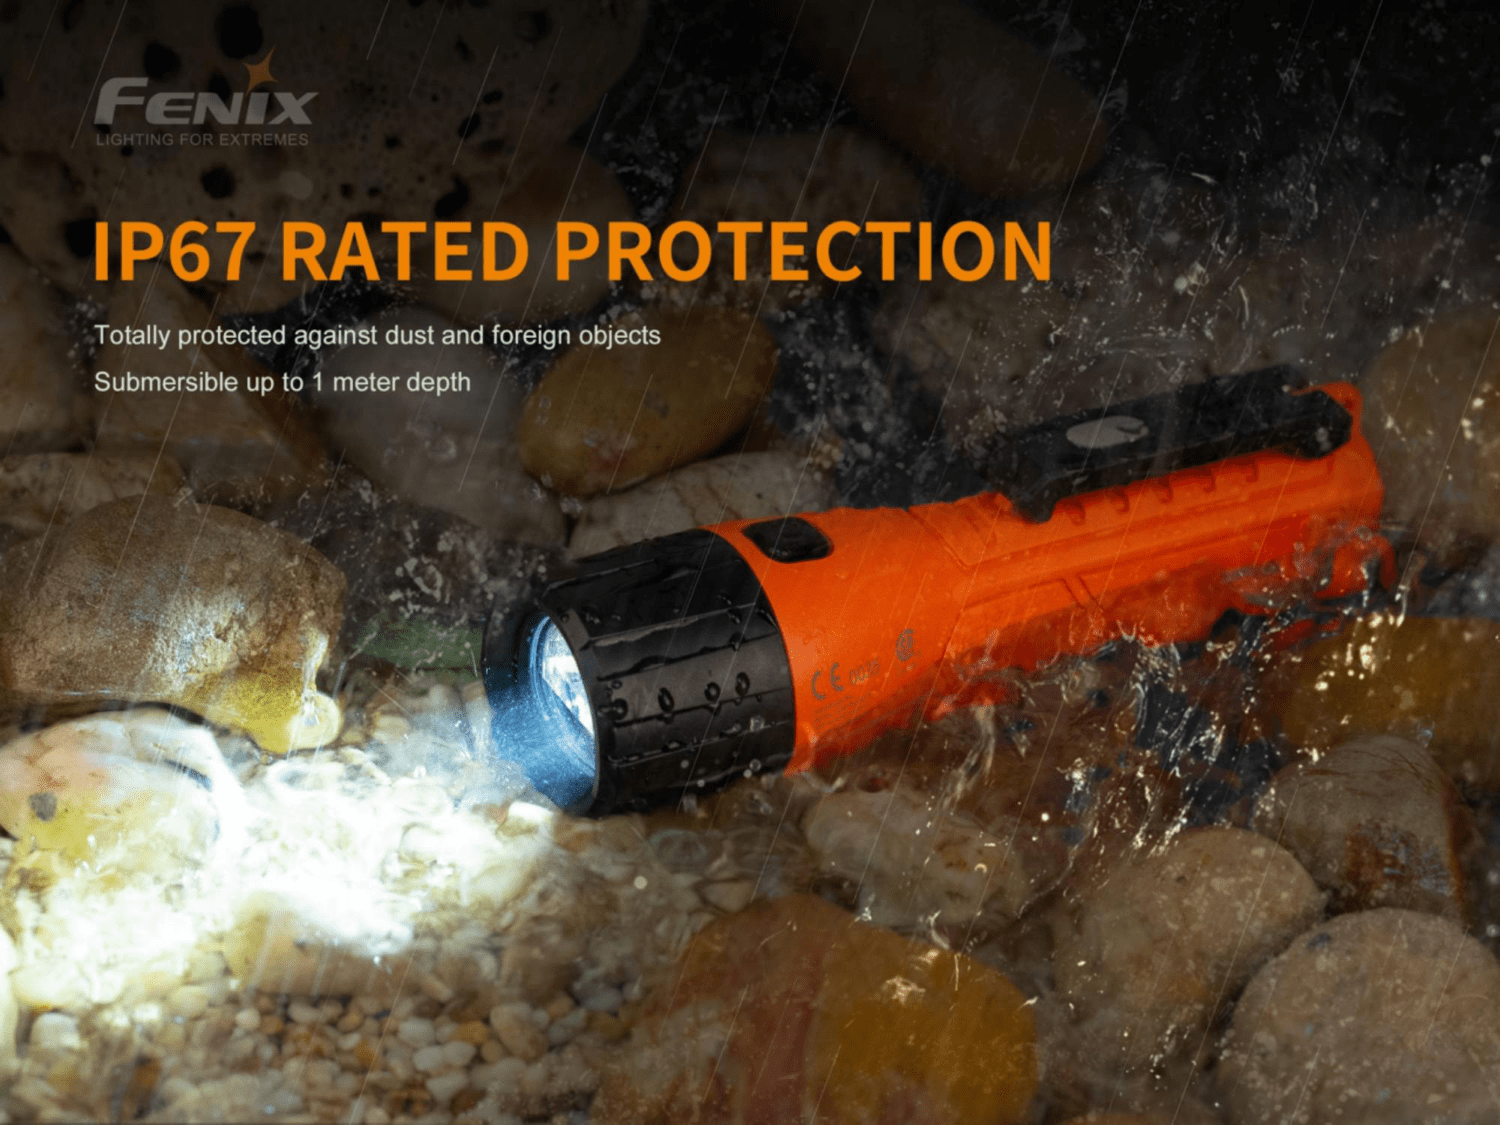 Fenix FLP Torch India, Flame Proof Torch, Intrinsically Safe Torch, Flame Proof Torch